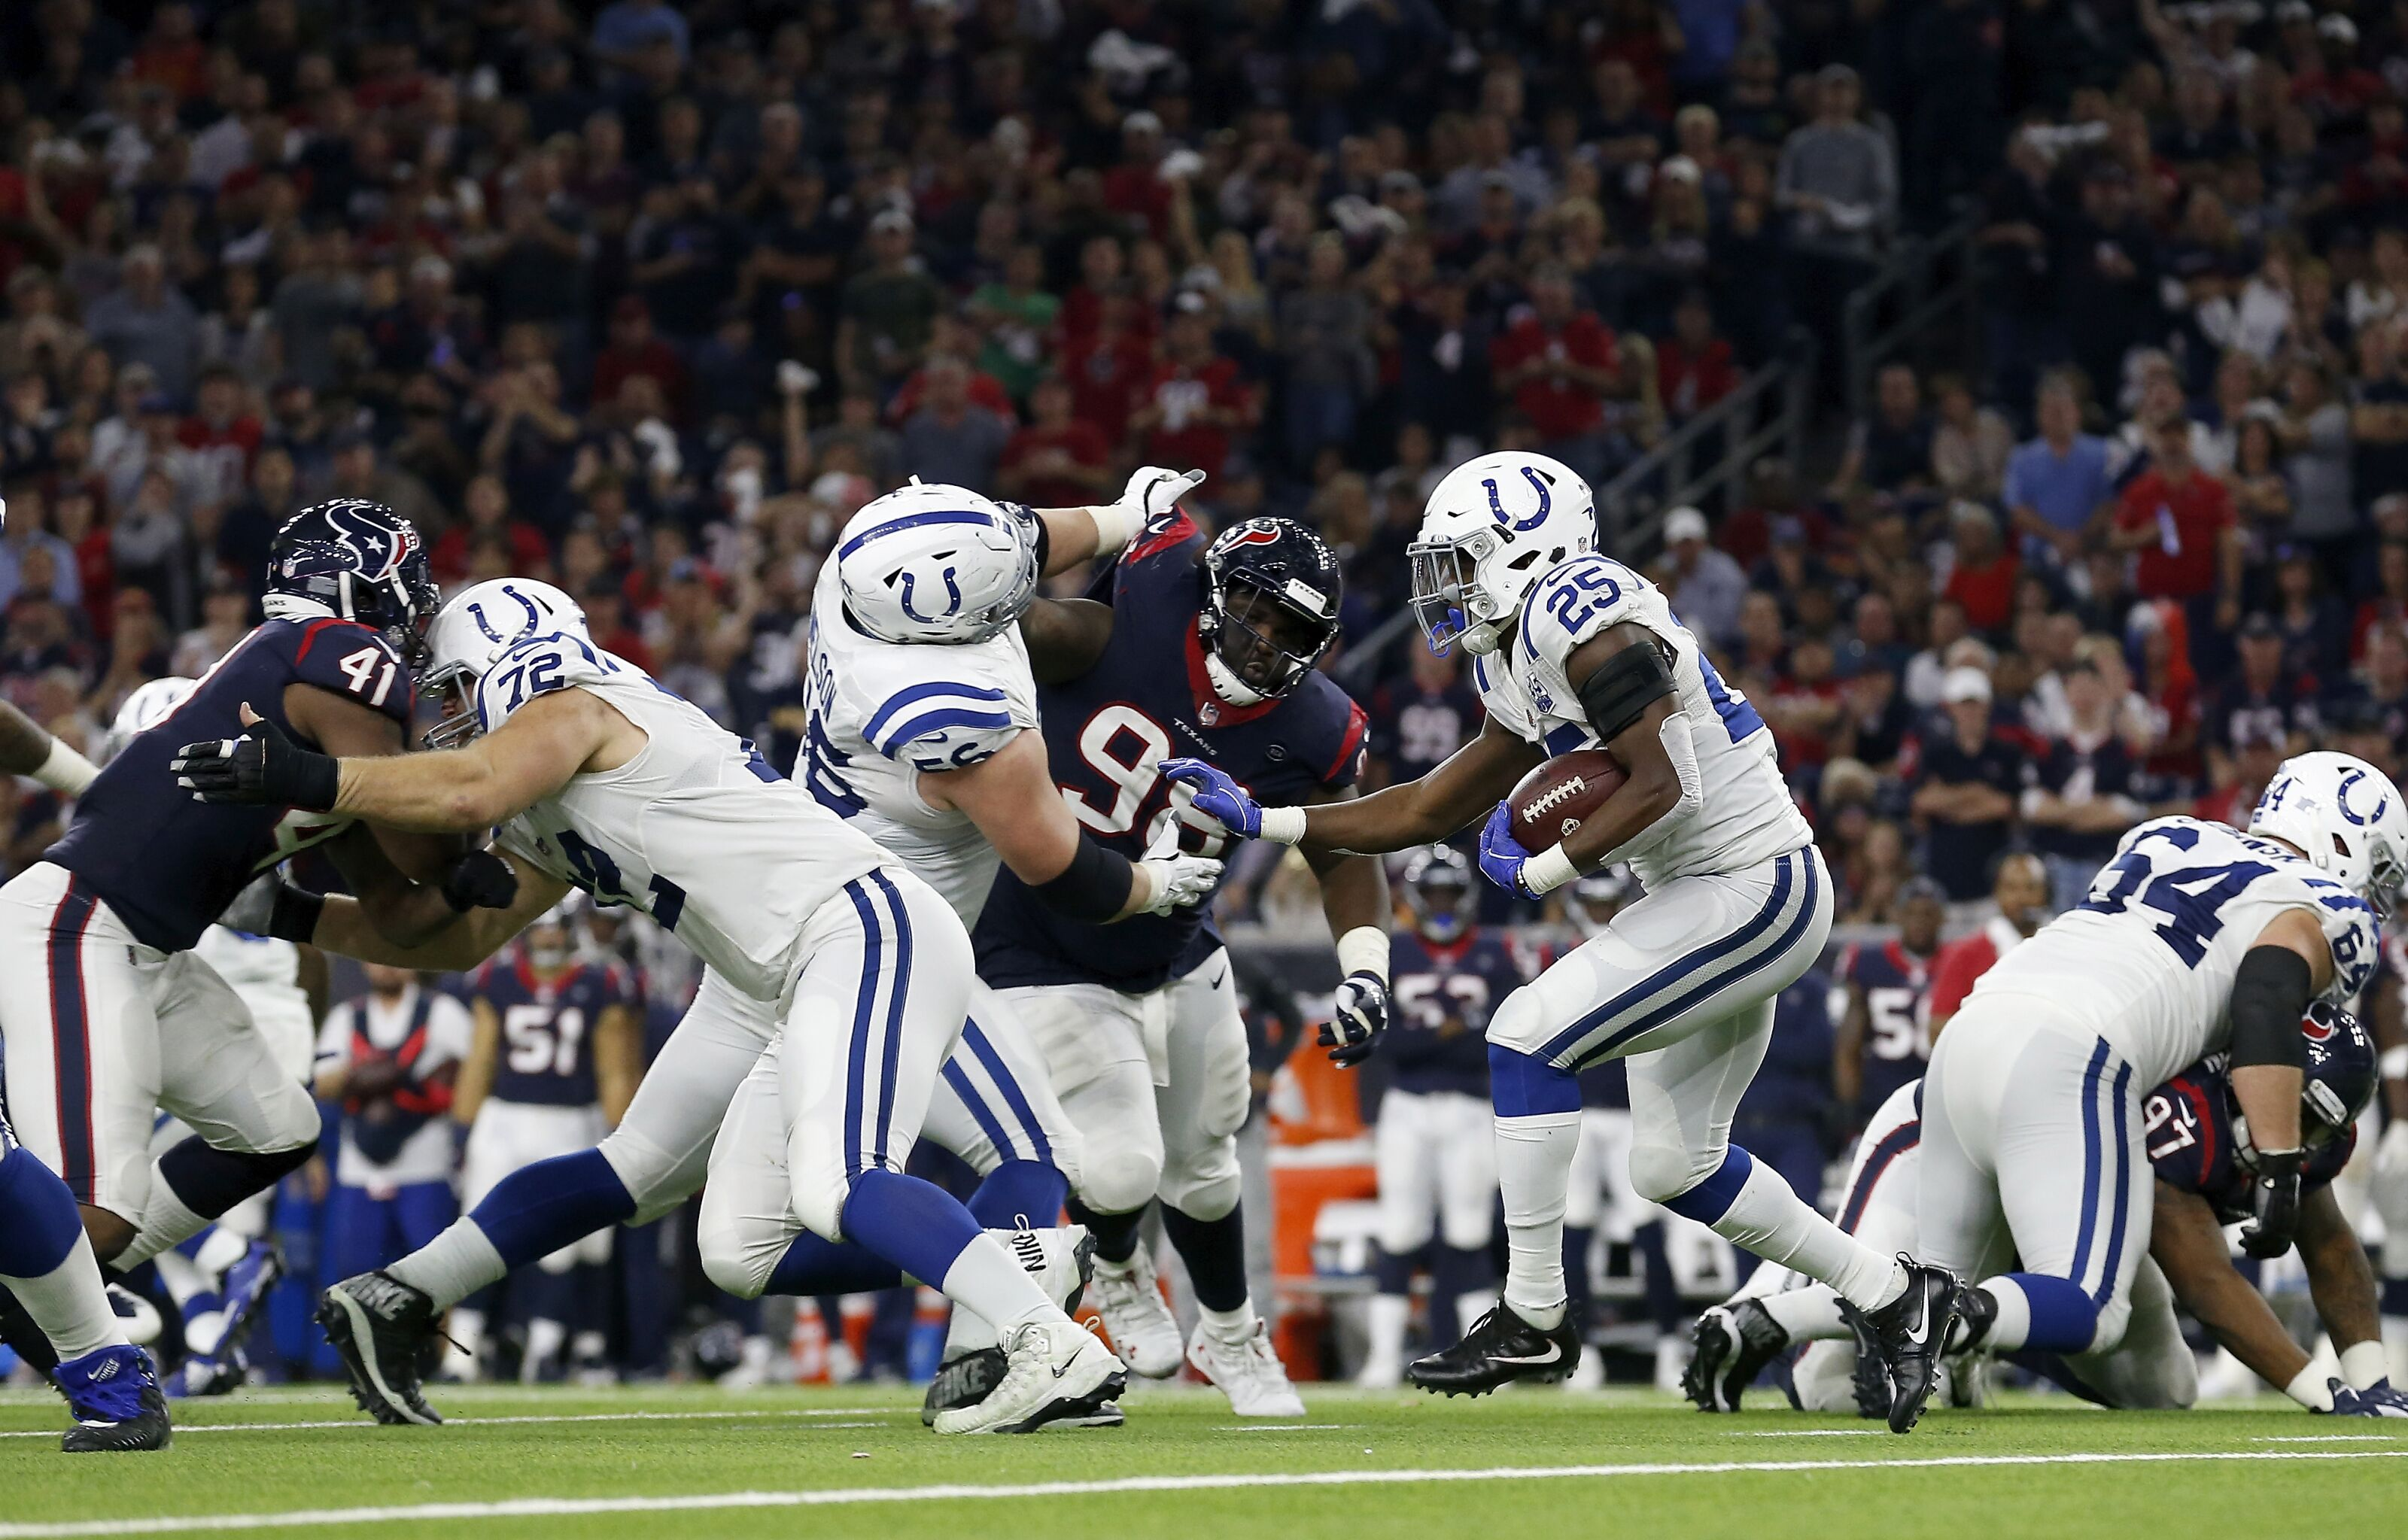 Colts vs. Texans: Week 6 betting odds